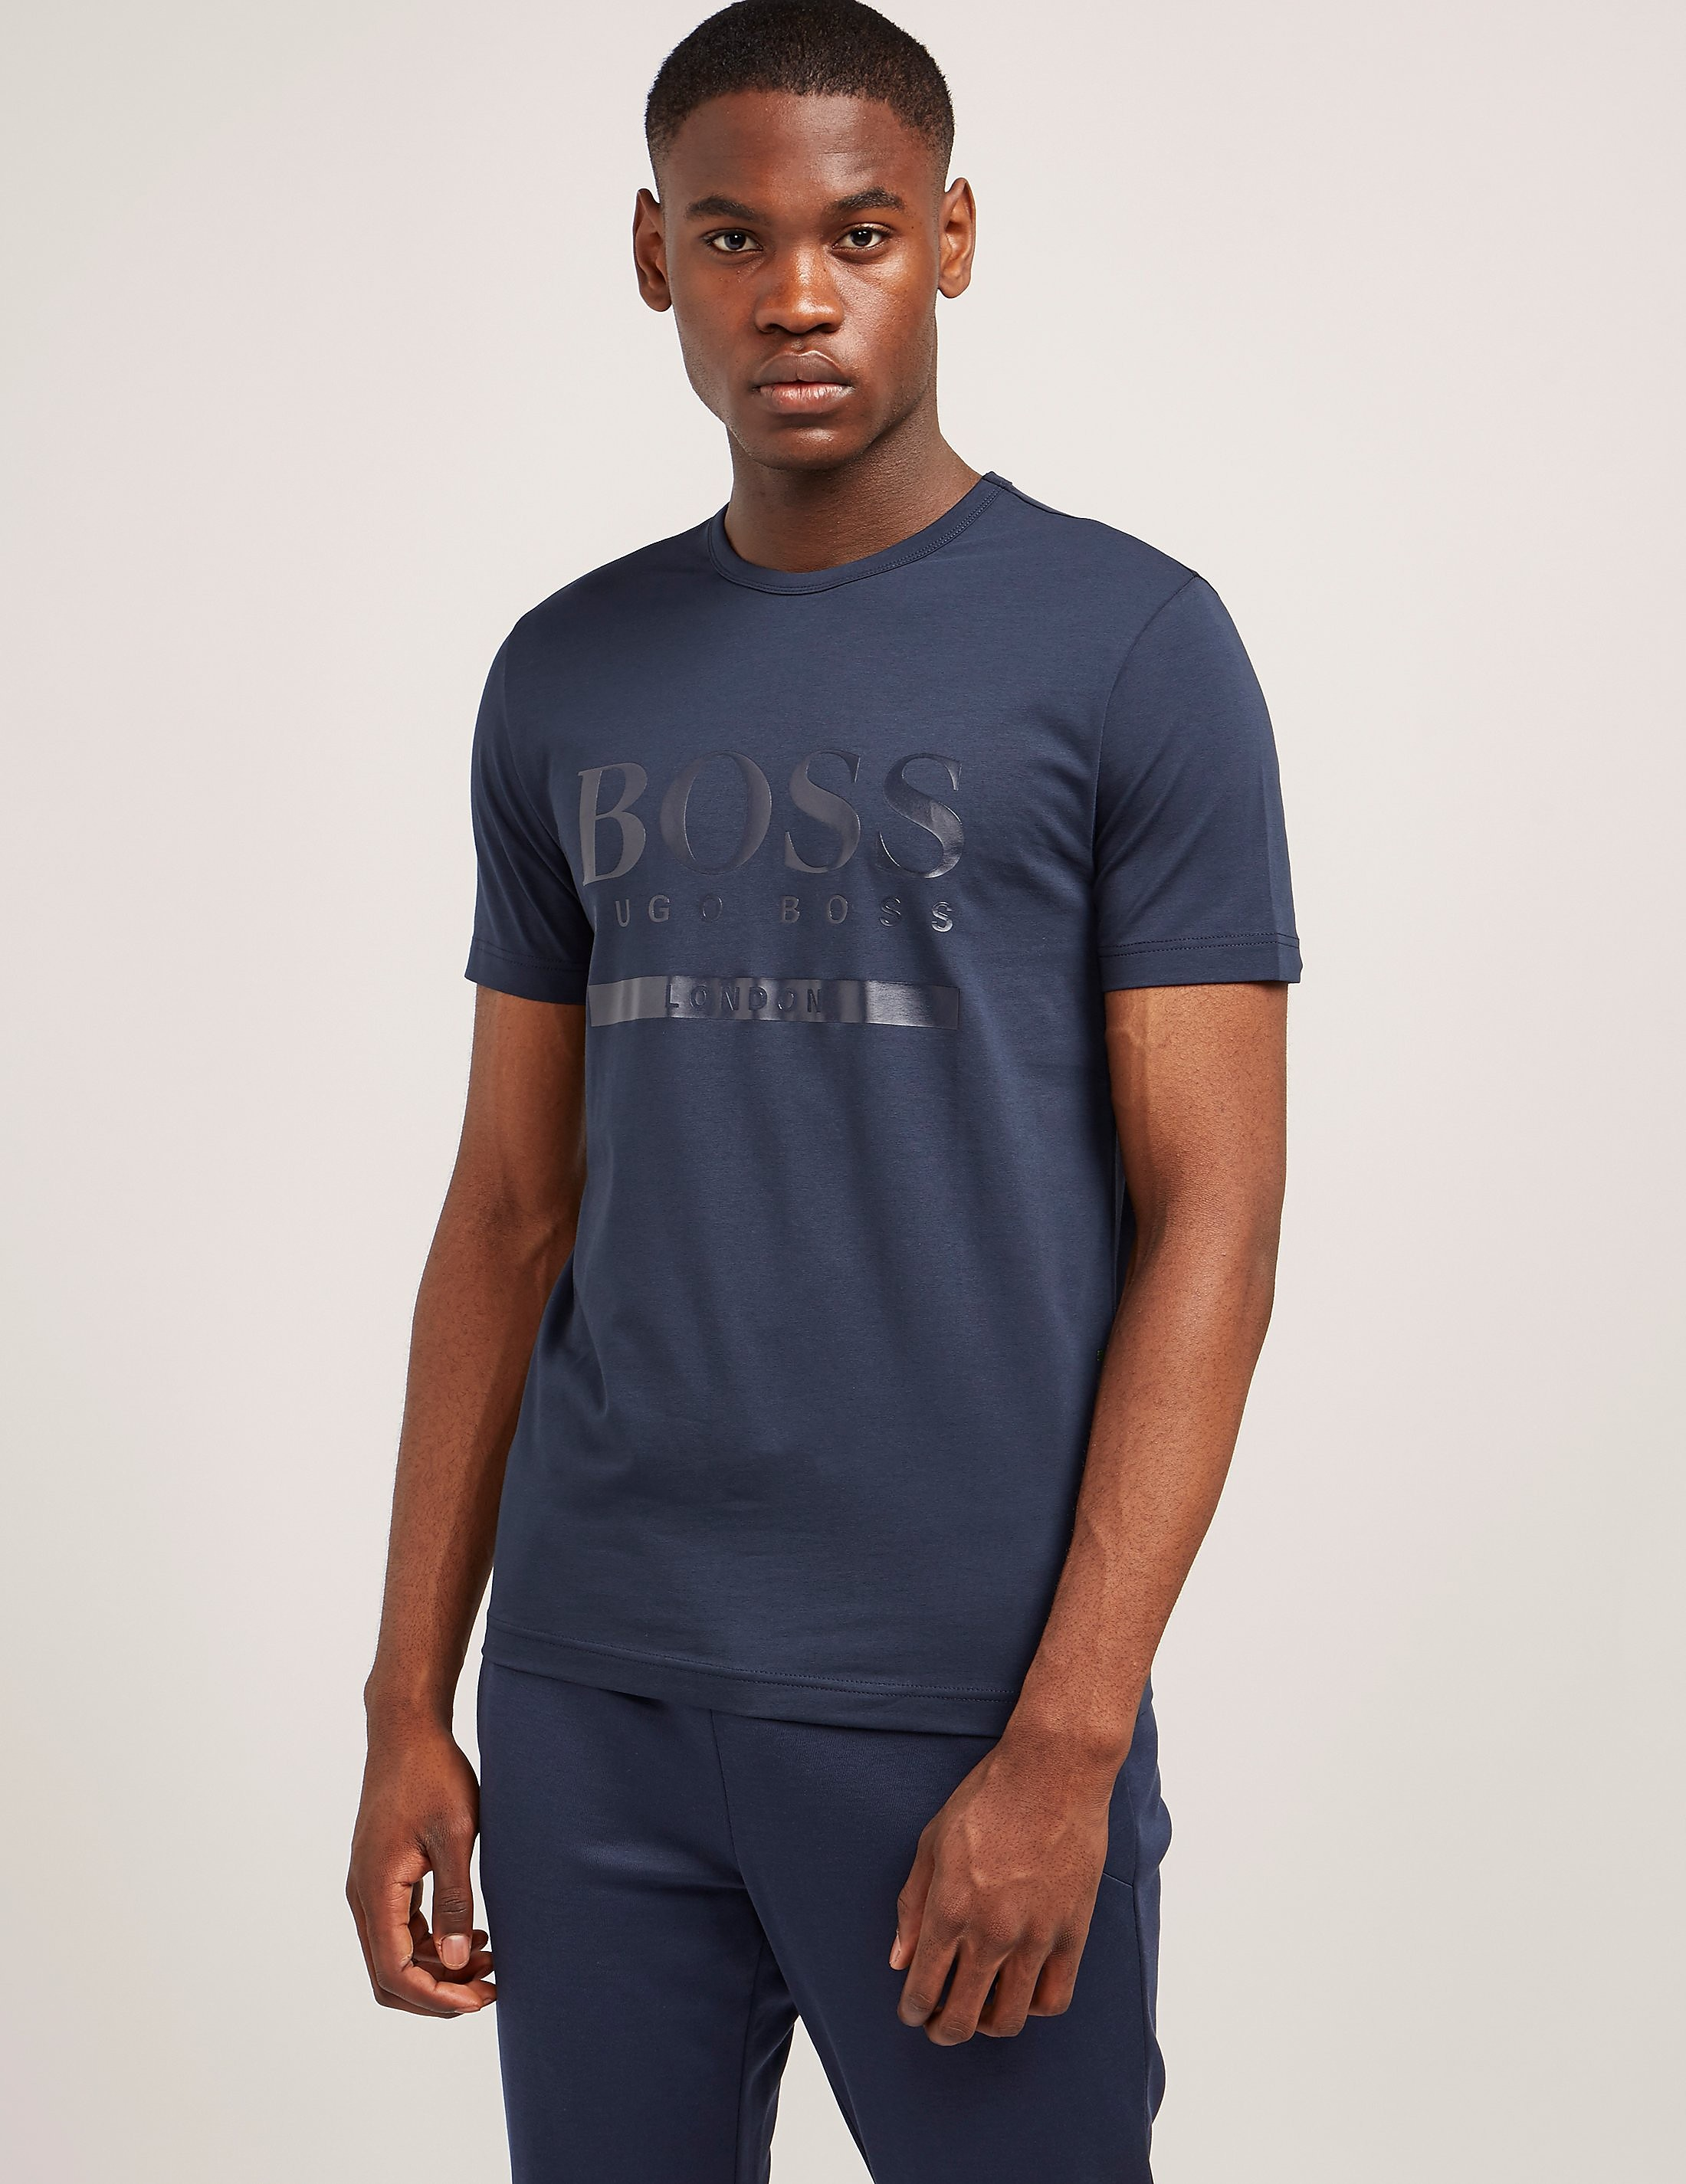 BOSS Green London Short Sleeve T-Shirt